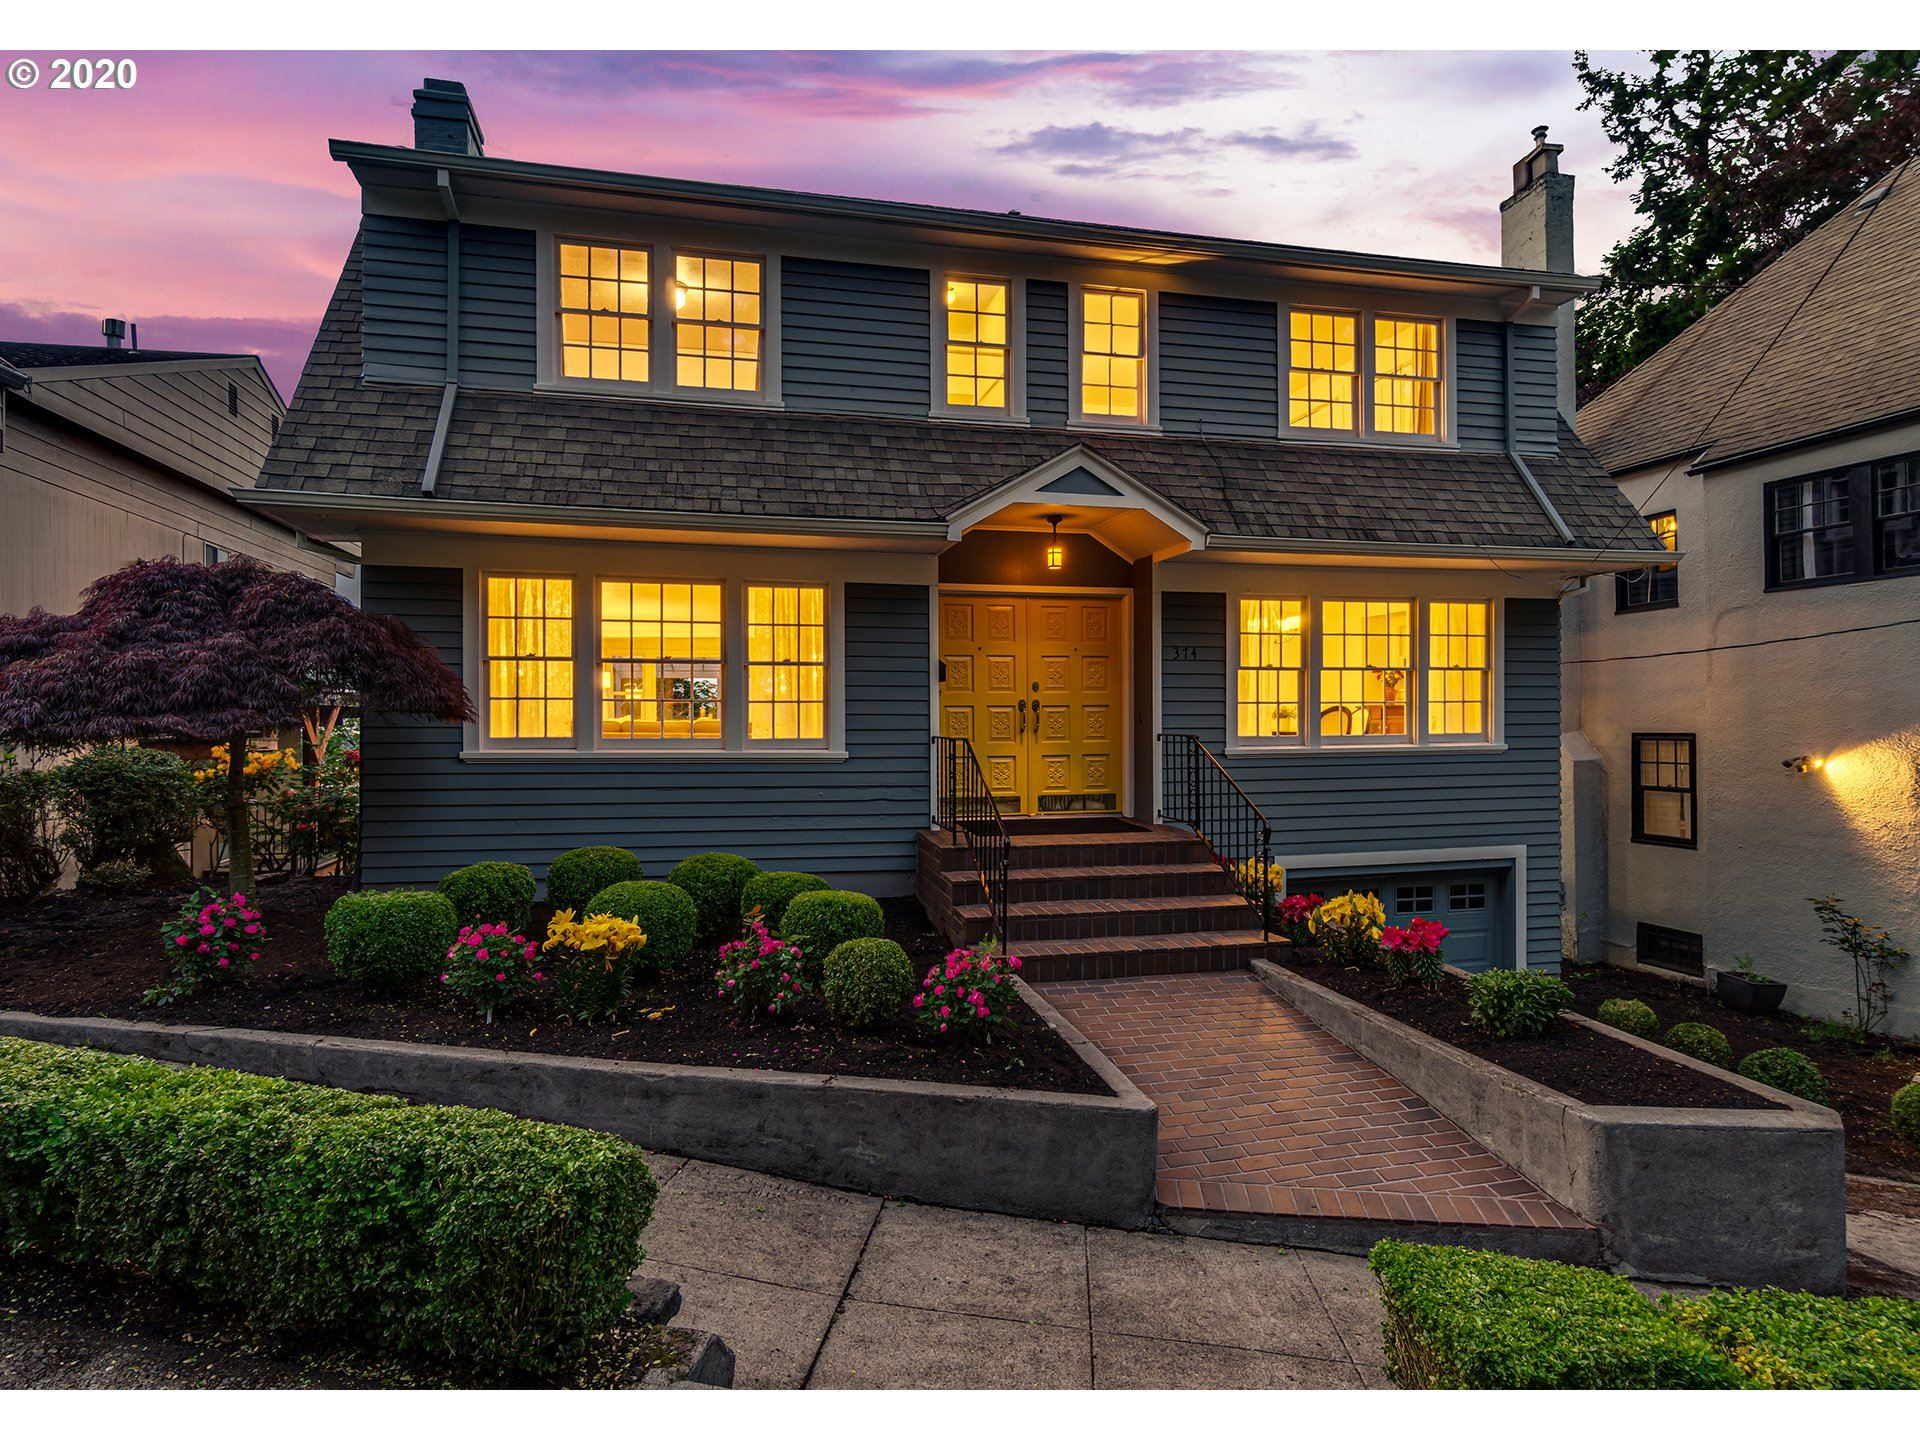 374 NW MACLEAY BLVD, Portland, OR 97210 - MLS#: 20449934